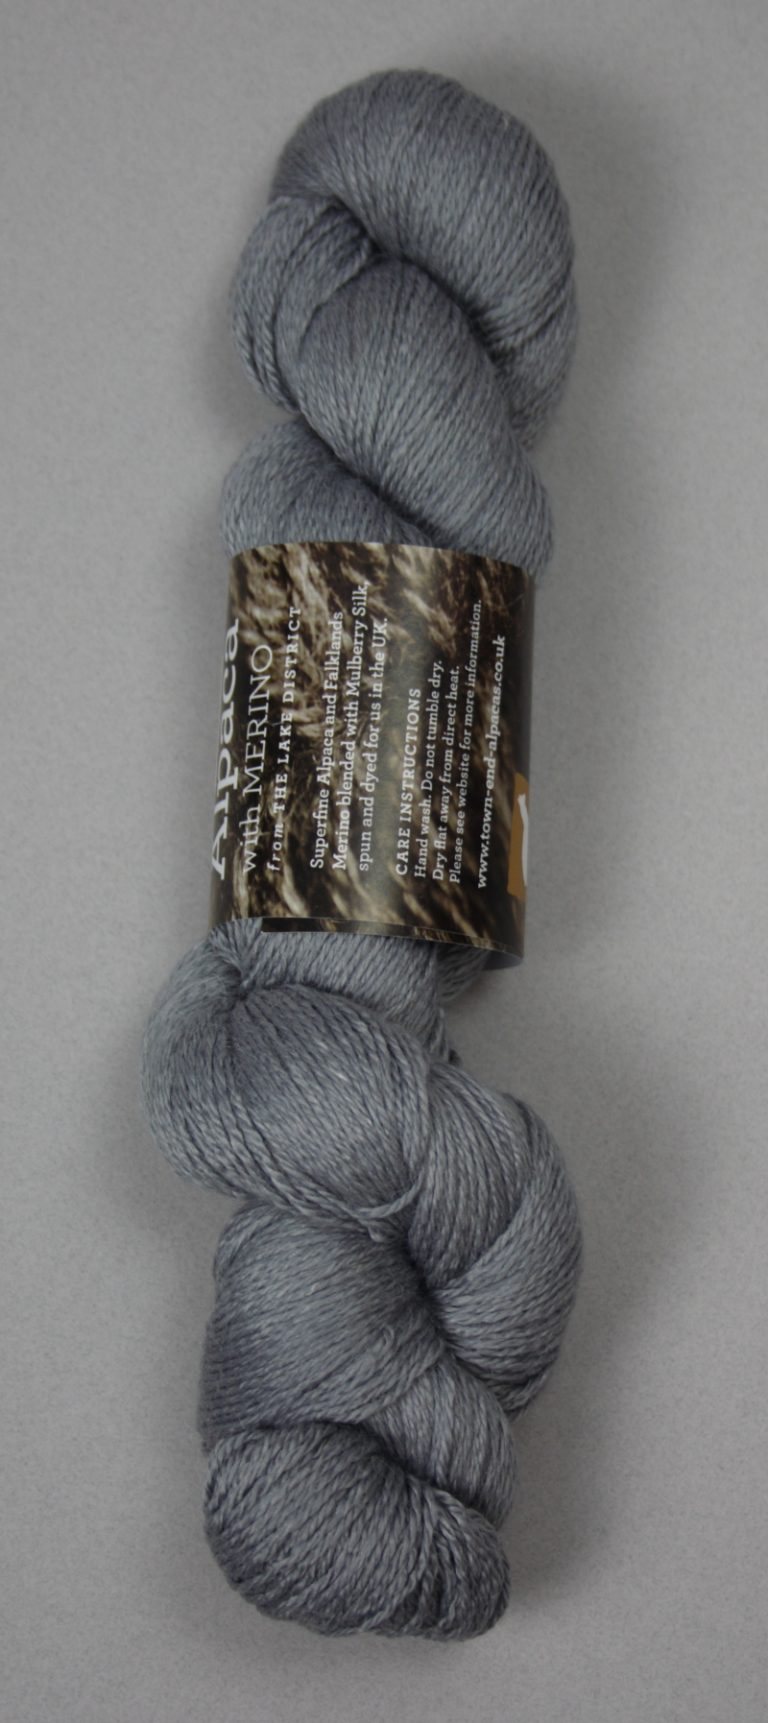 Whitbarrow alpaca fingering yarn.